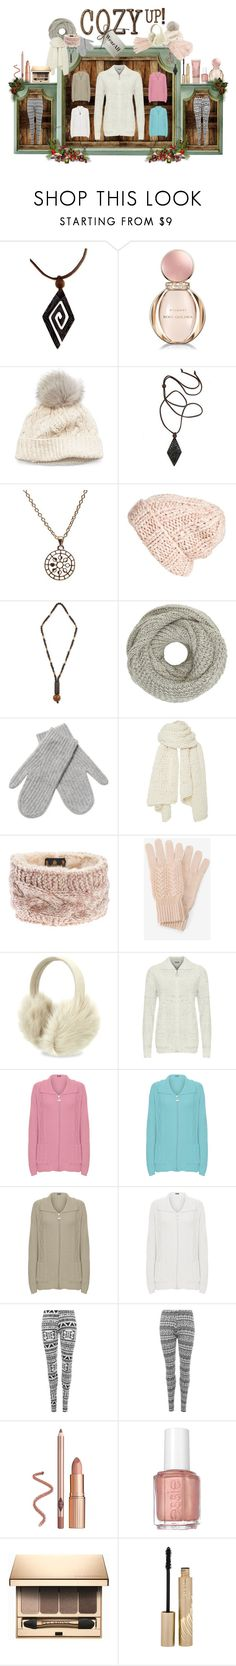 """❄ ❅ Cosy Up! ❅ ❄"" by wearall ❤ liked on Polyvore featuring CoffeeShop, NOVICA, Bulgari, SIJJL, Puck Wanderlust, Free People, John Lewis, White + Warren, I Love Mr. Mittens and Barbour"